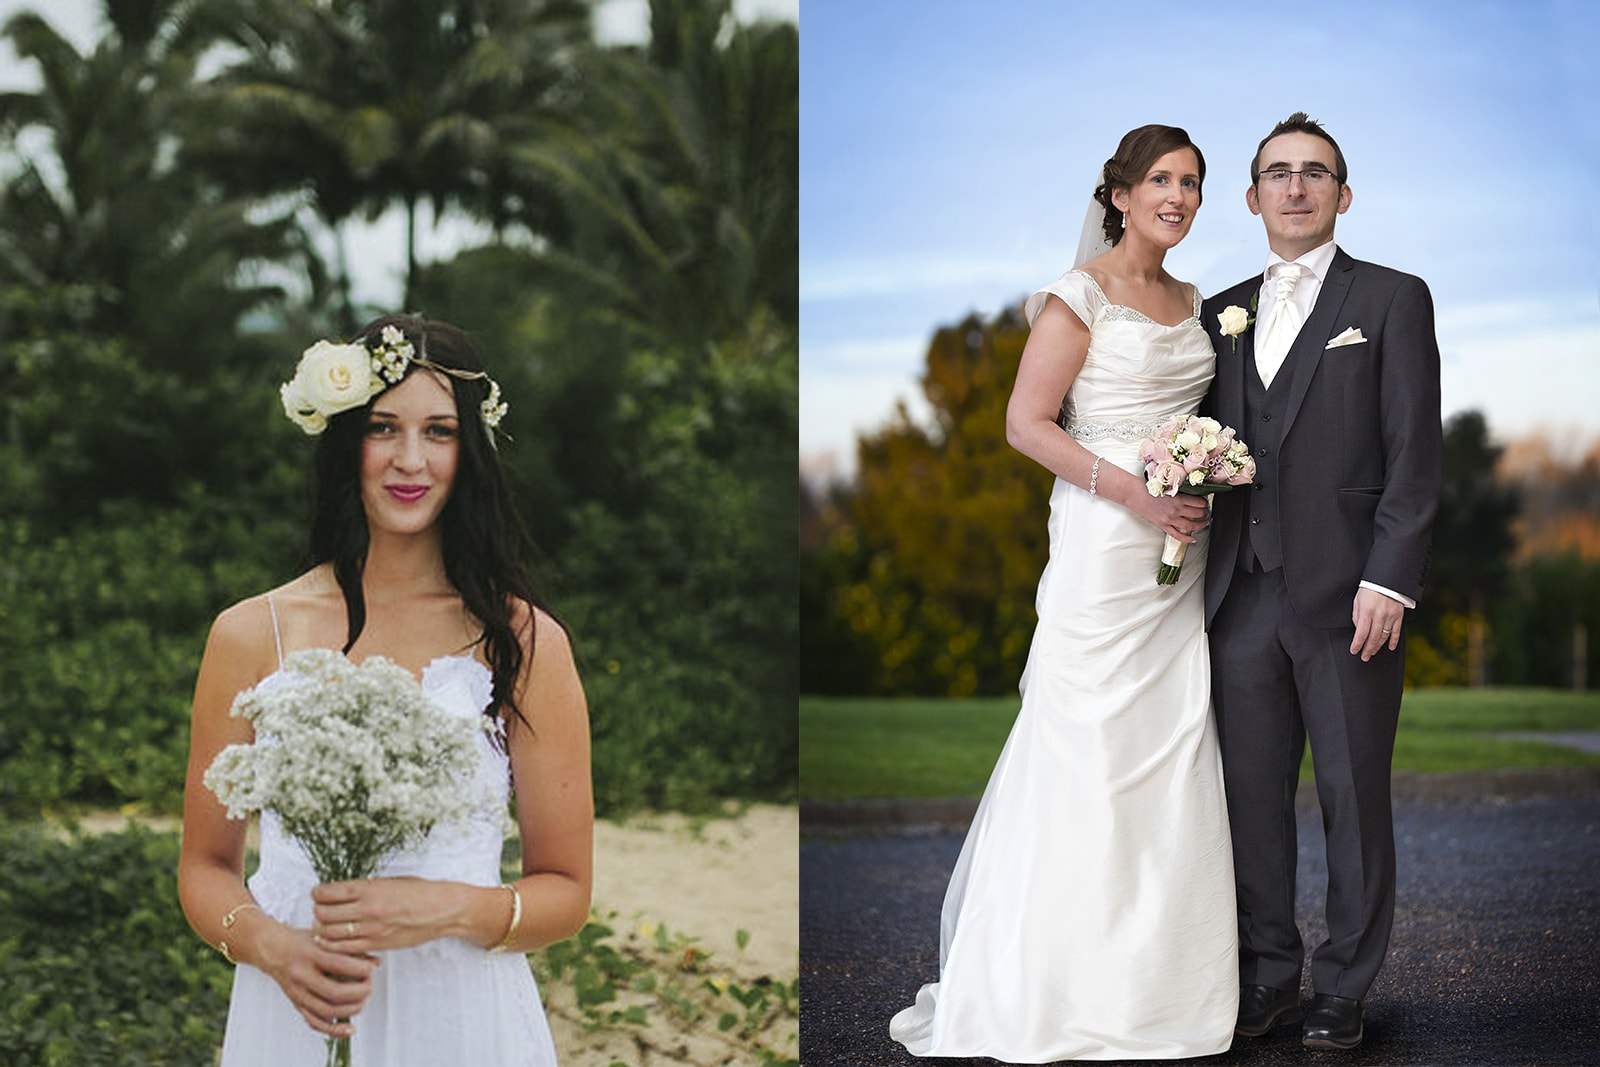 Wedding Photo Editing Service